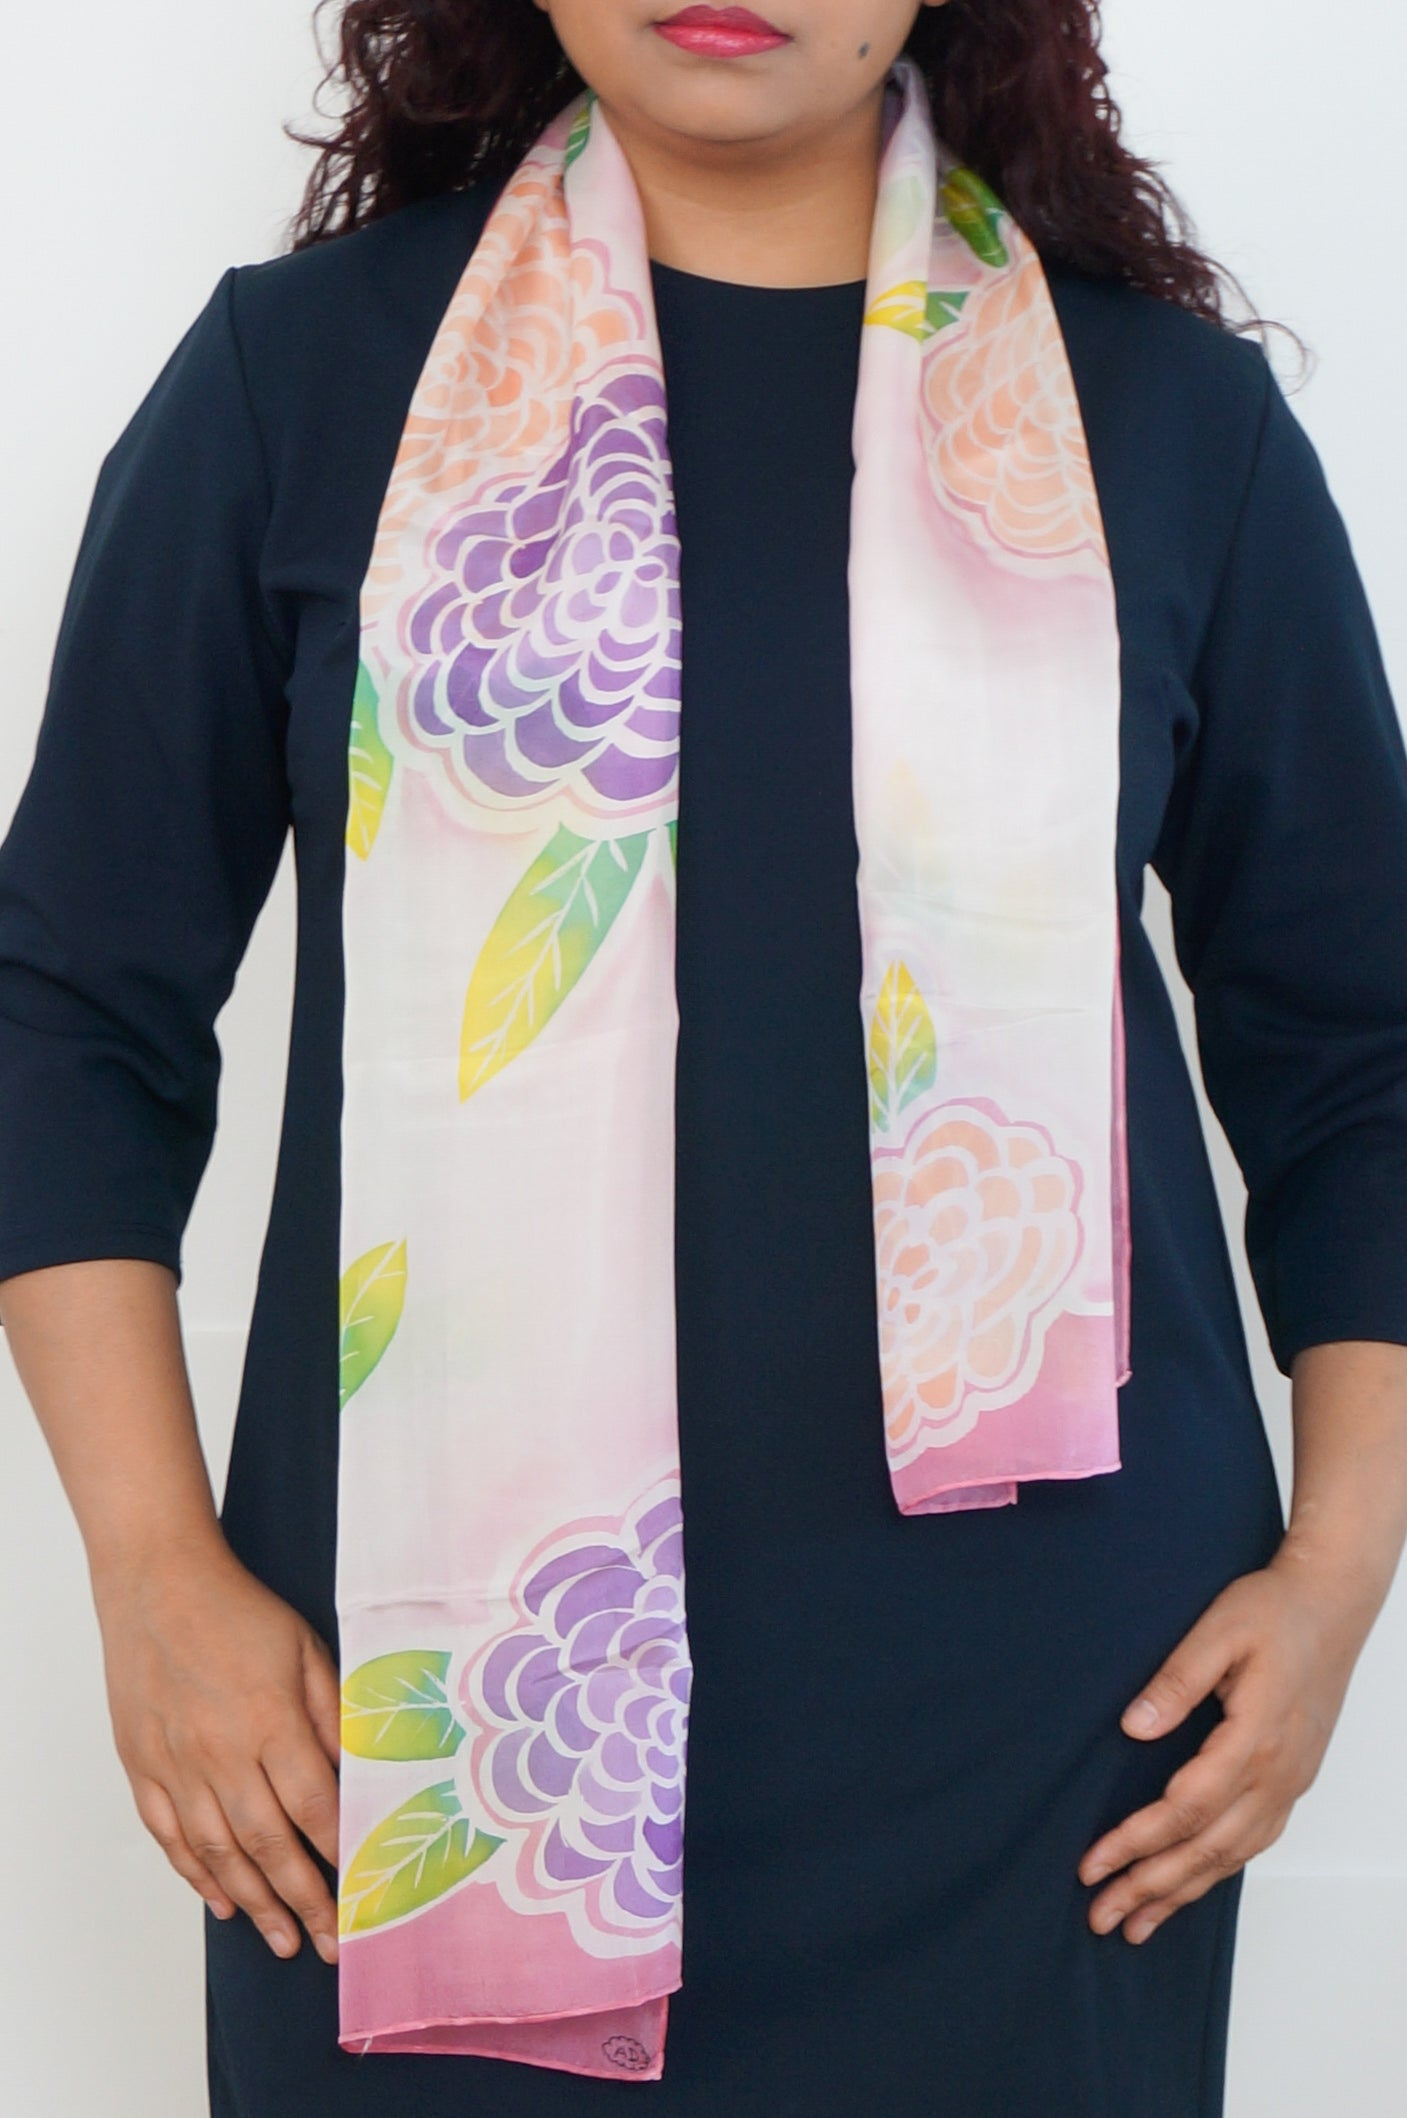 Spring Bloom silk scarf